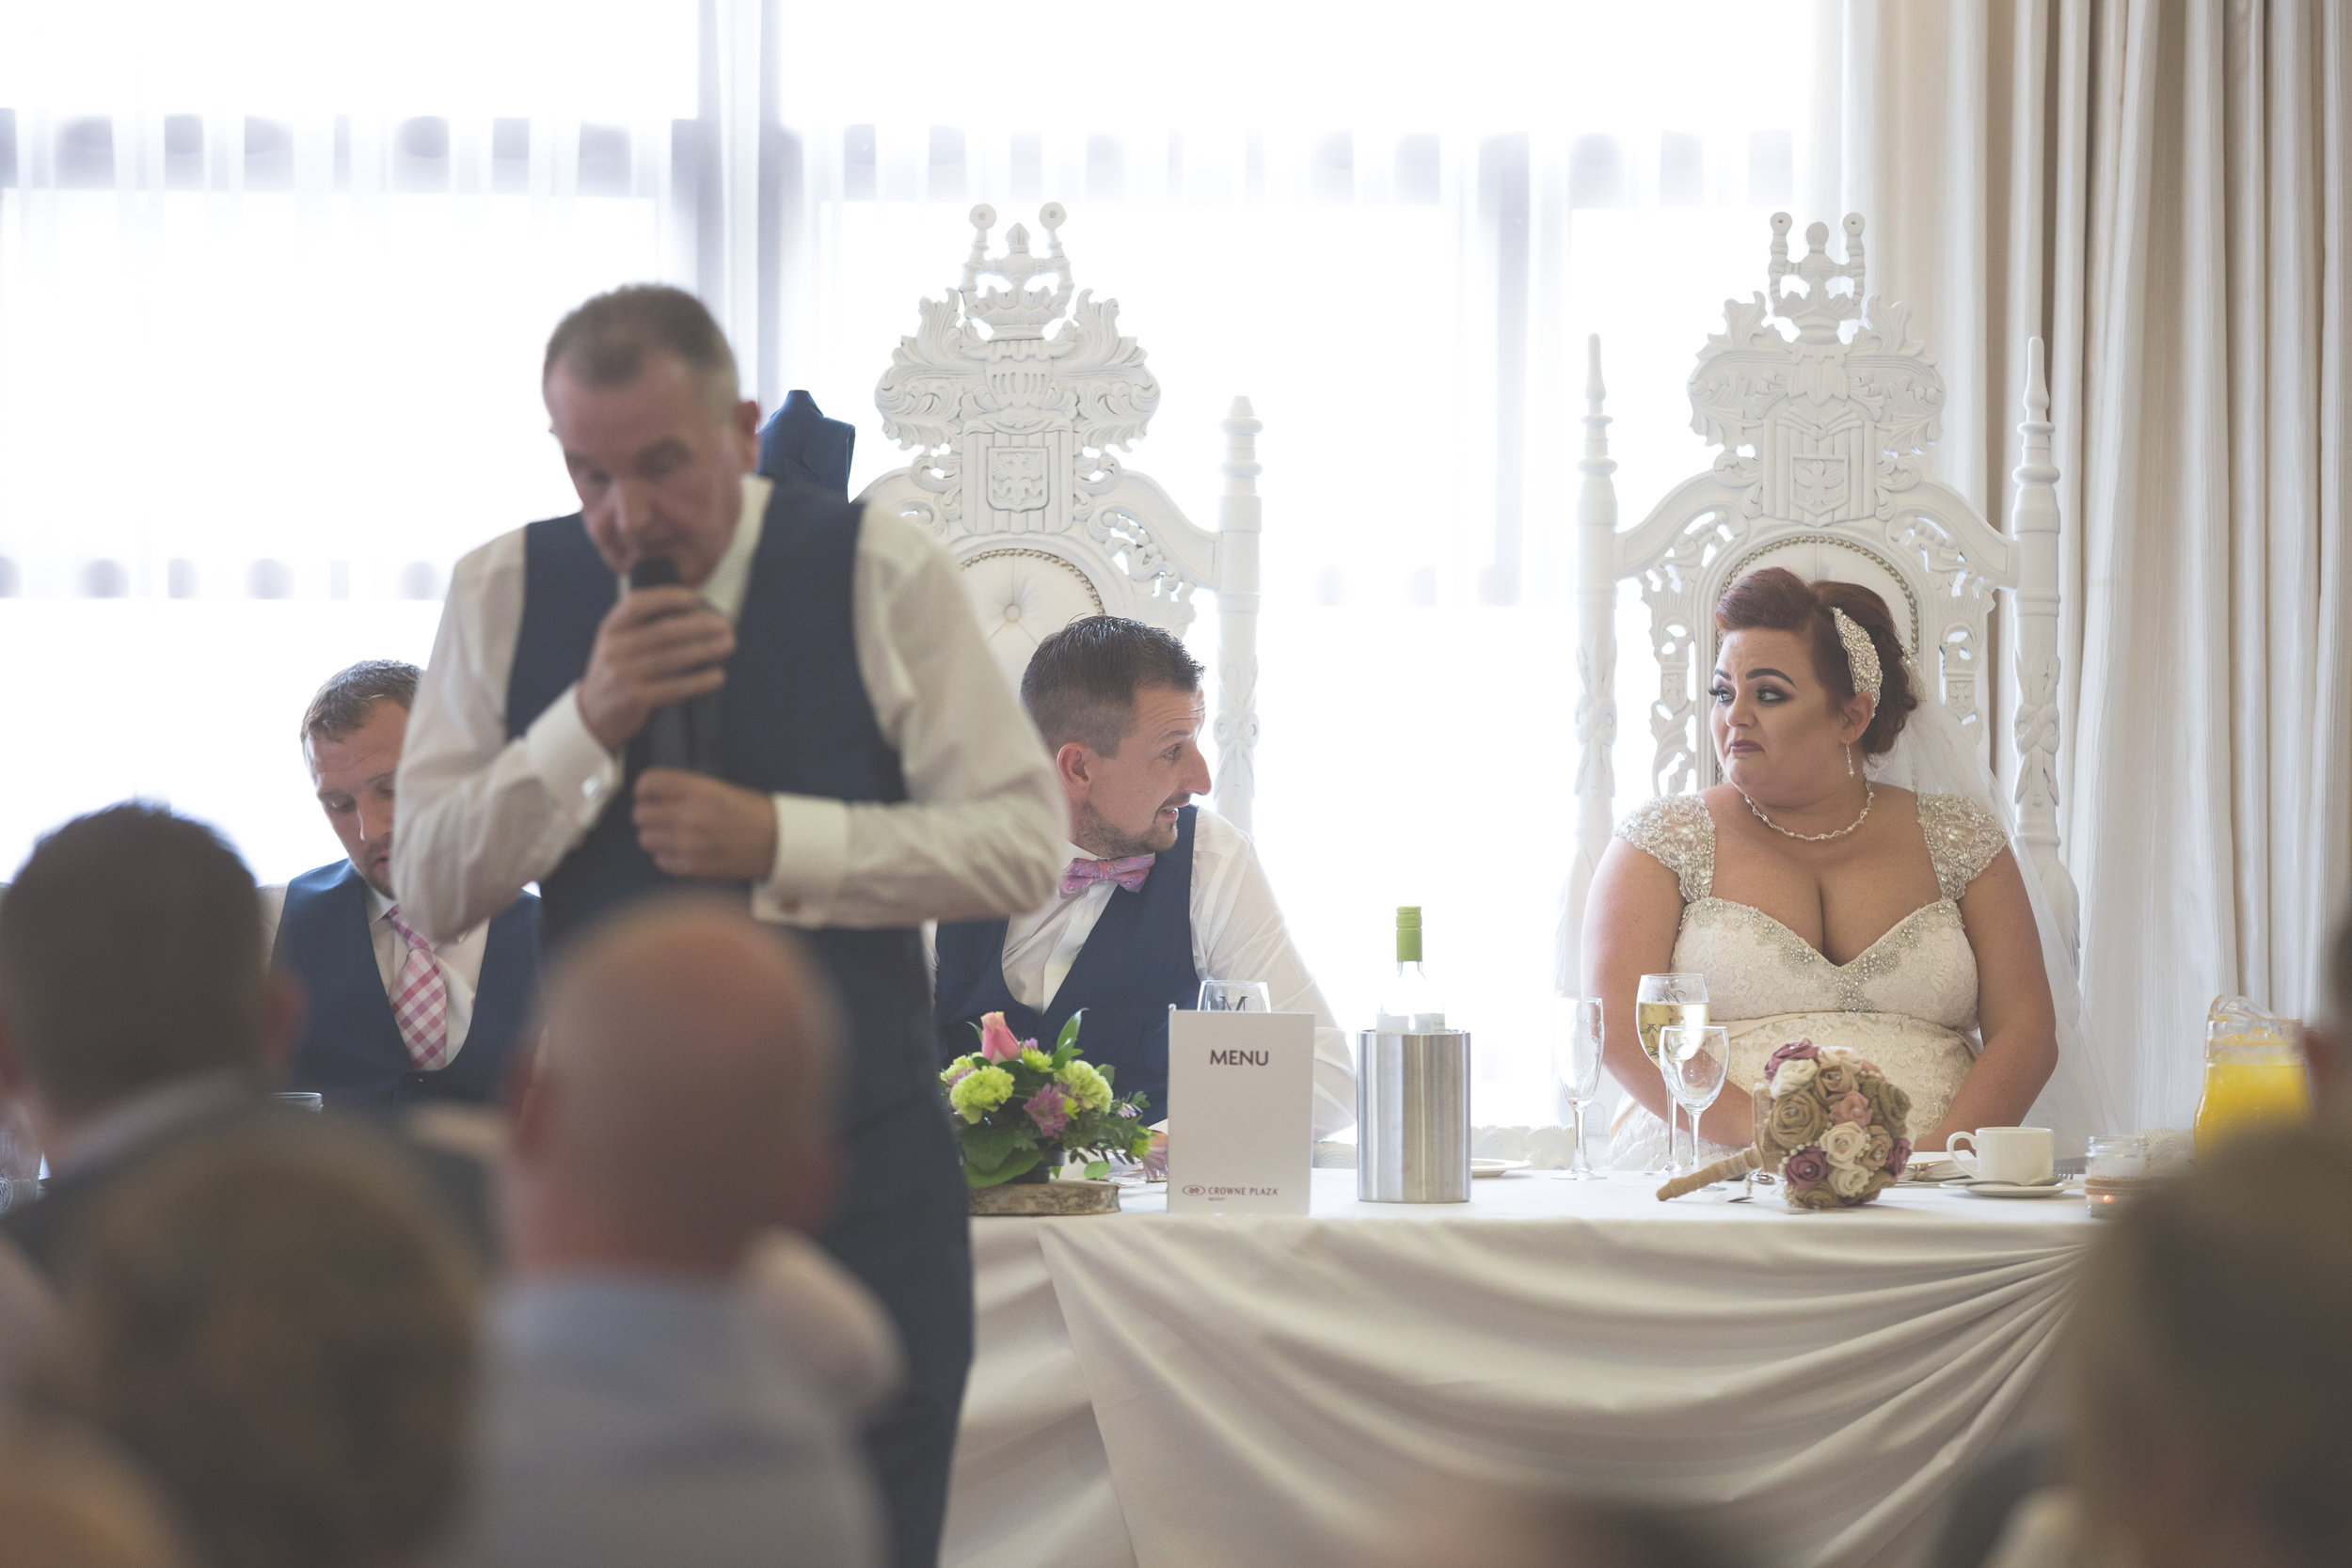 Antoinette & Stephen - Speeches | Brian McEwan Photography | Wedding Photographer Northern Ireland 55.jpg